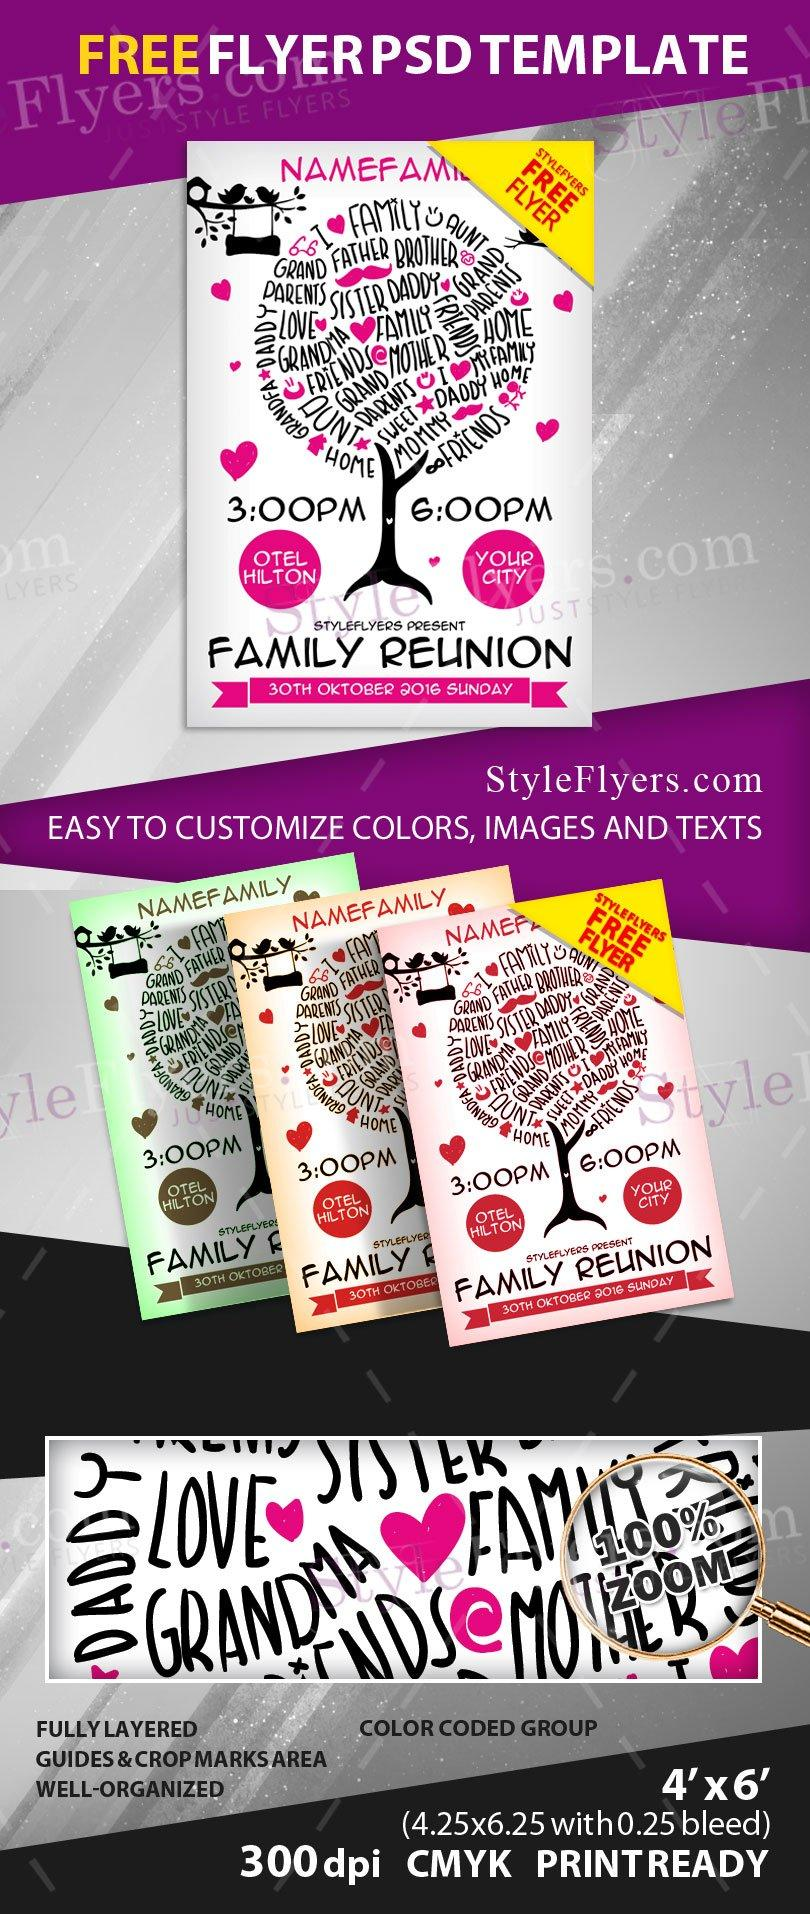 Family Reunion Flyer Template Free